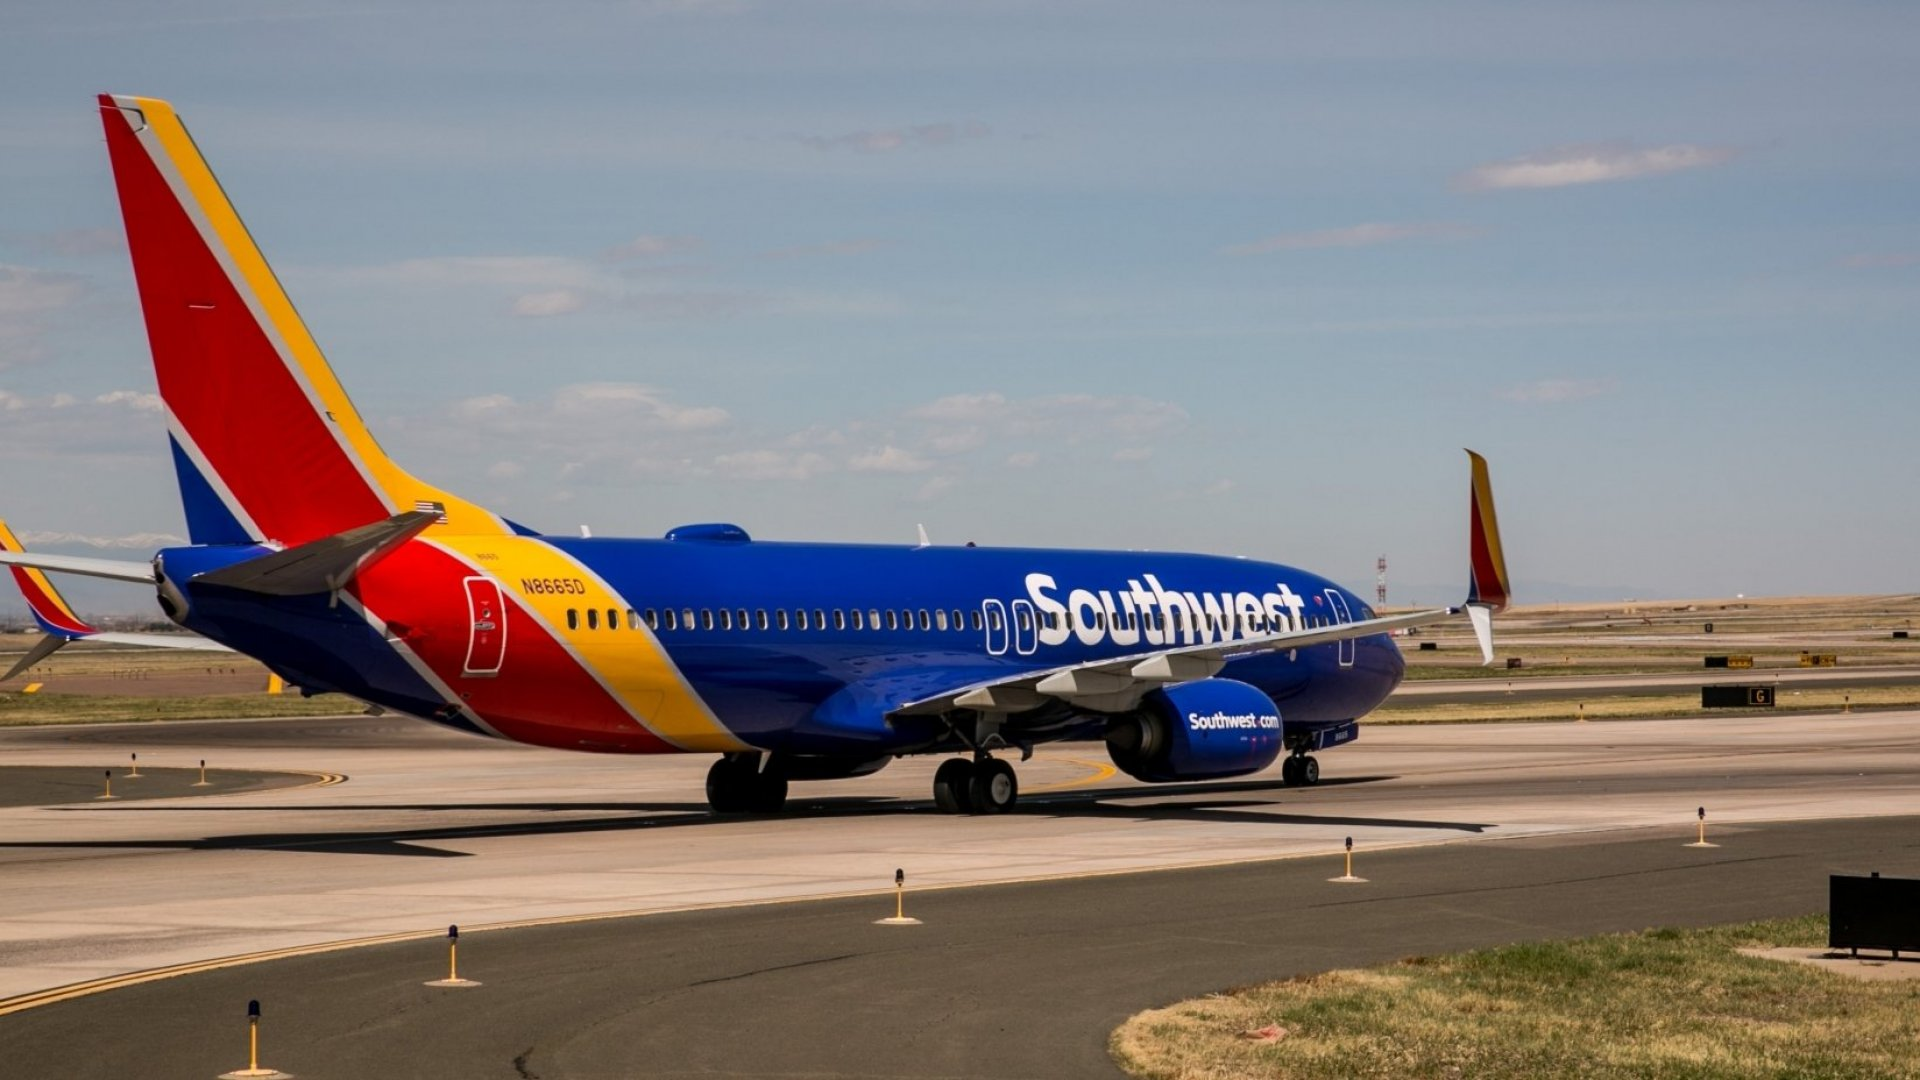 Southwest Airlines CEO Just Revealed the One Big Mistake He Made in His Otherwise Wildly Successful Career